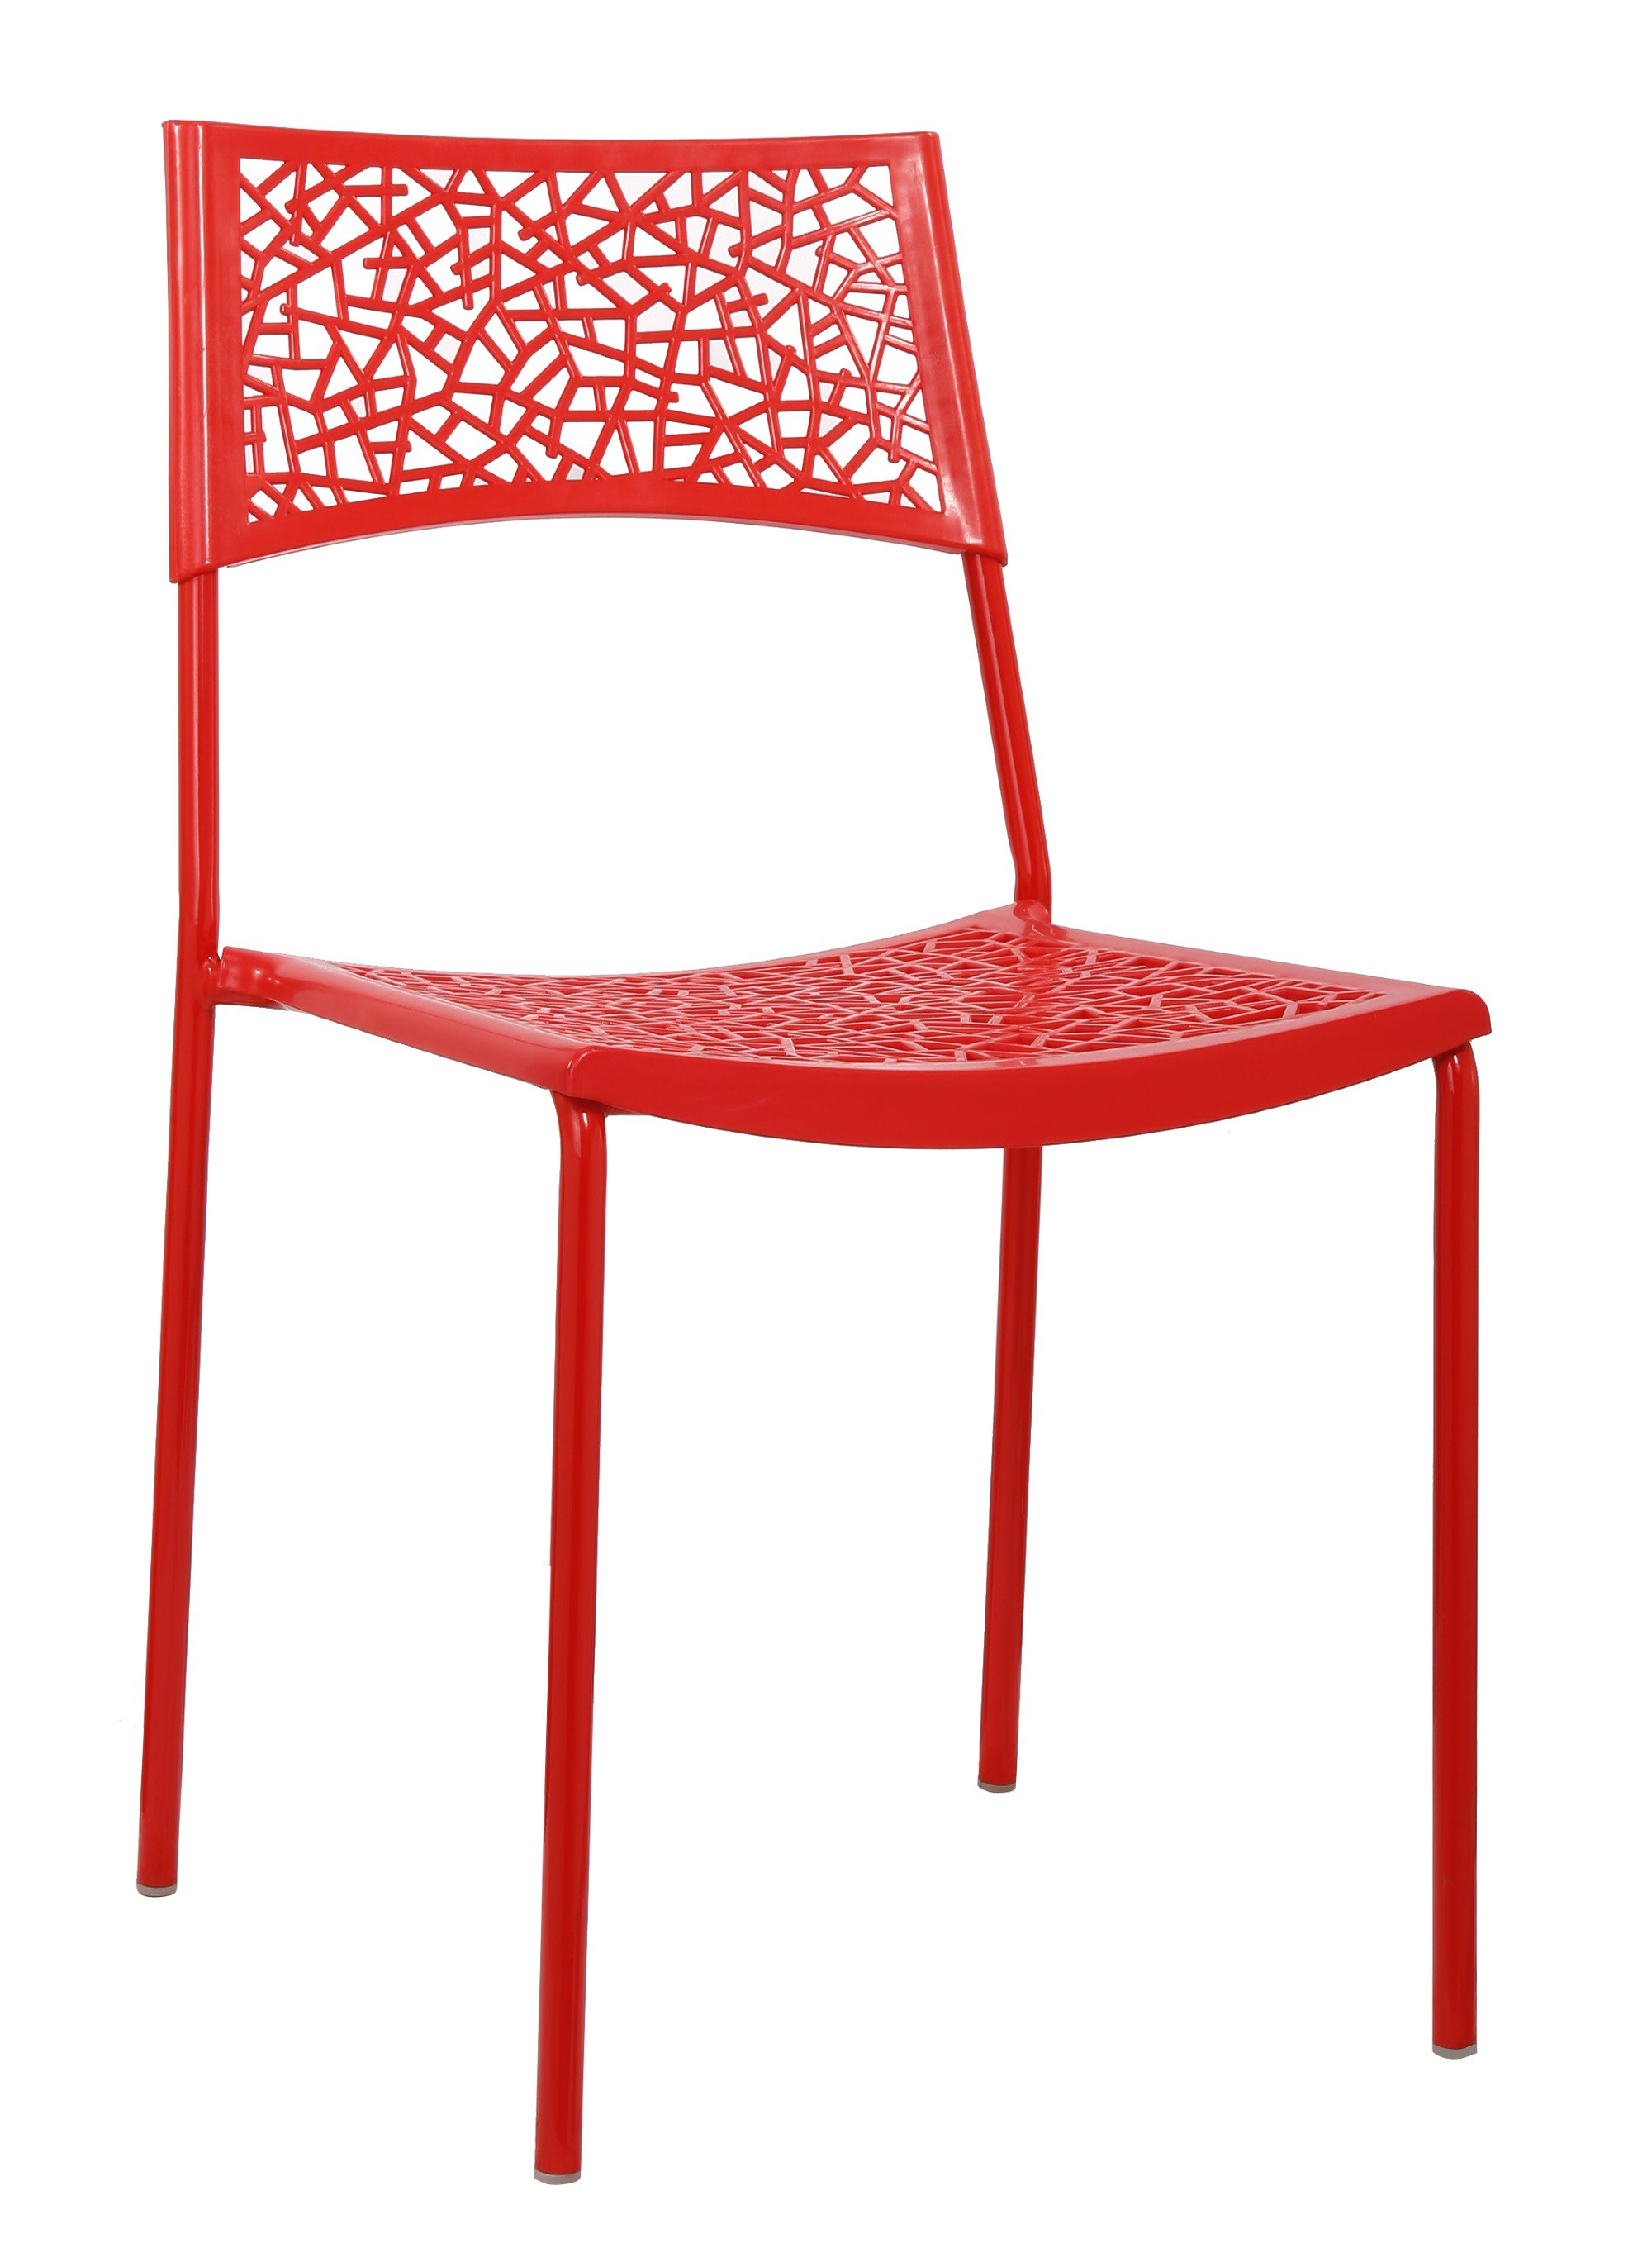 chaise rouge plastique 19 id es de d coration int rieure french decor. Black Bedroom Furniture Sets. Home Design Ideas